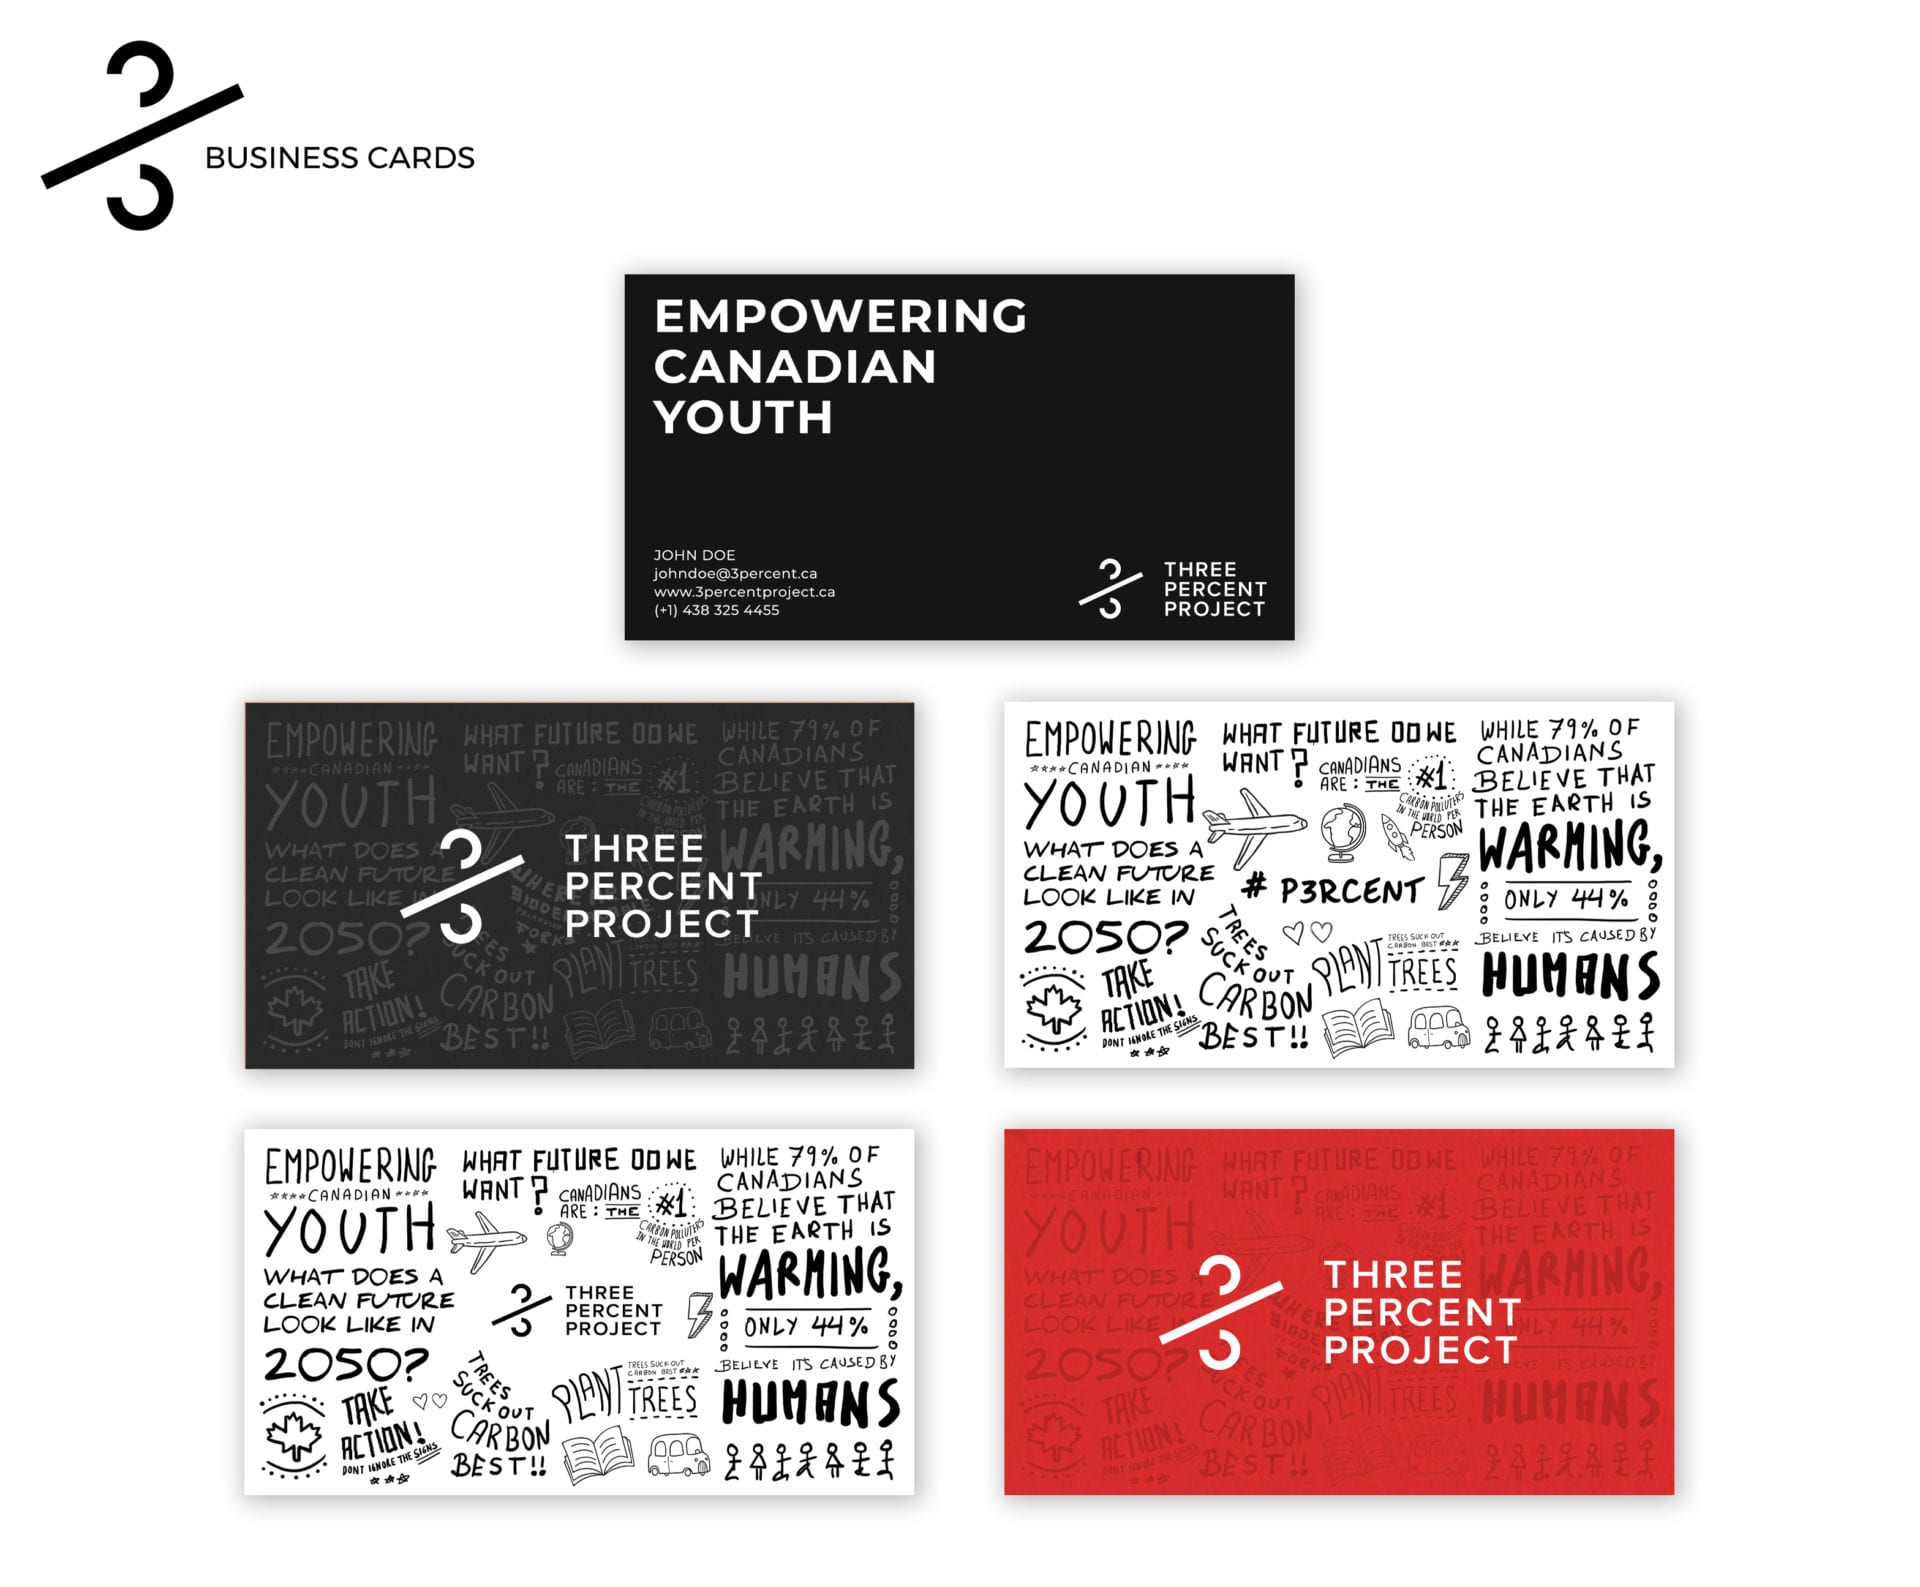 3percent-marketing_business-cards